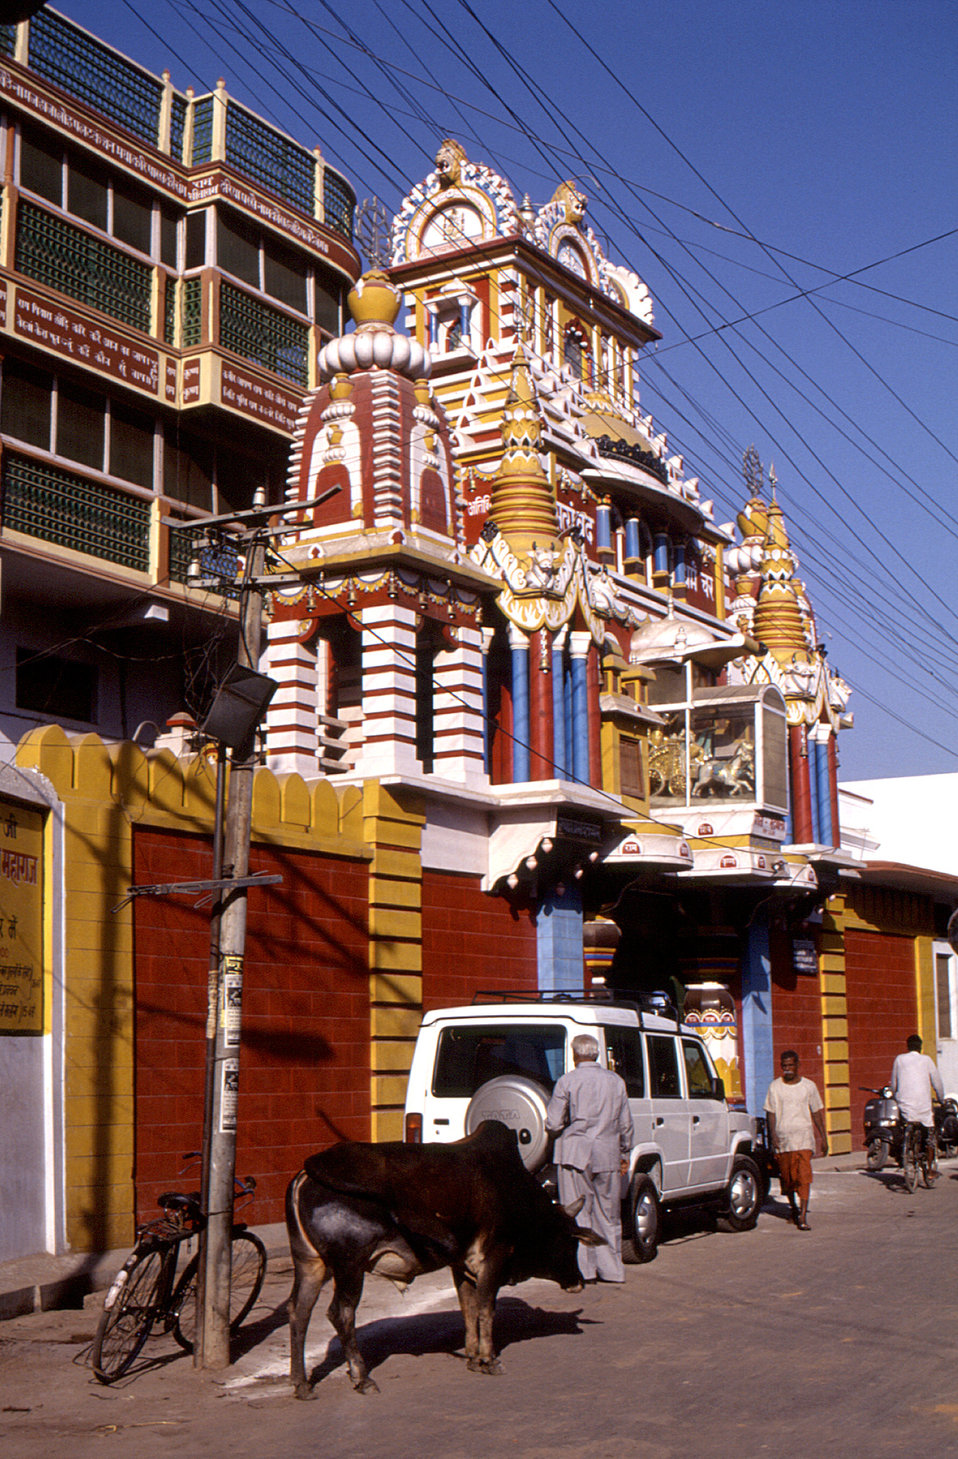 This 2000 image was captured just outside the architecturally ornate offices of the Geeta Press in Gorakhpur, India.  The Geeta Press is a w